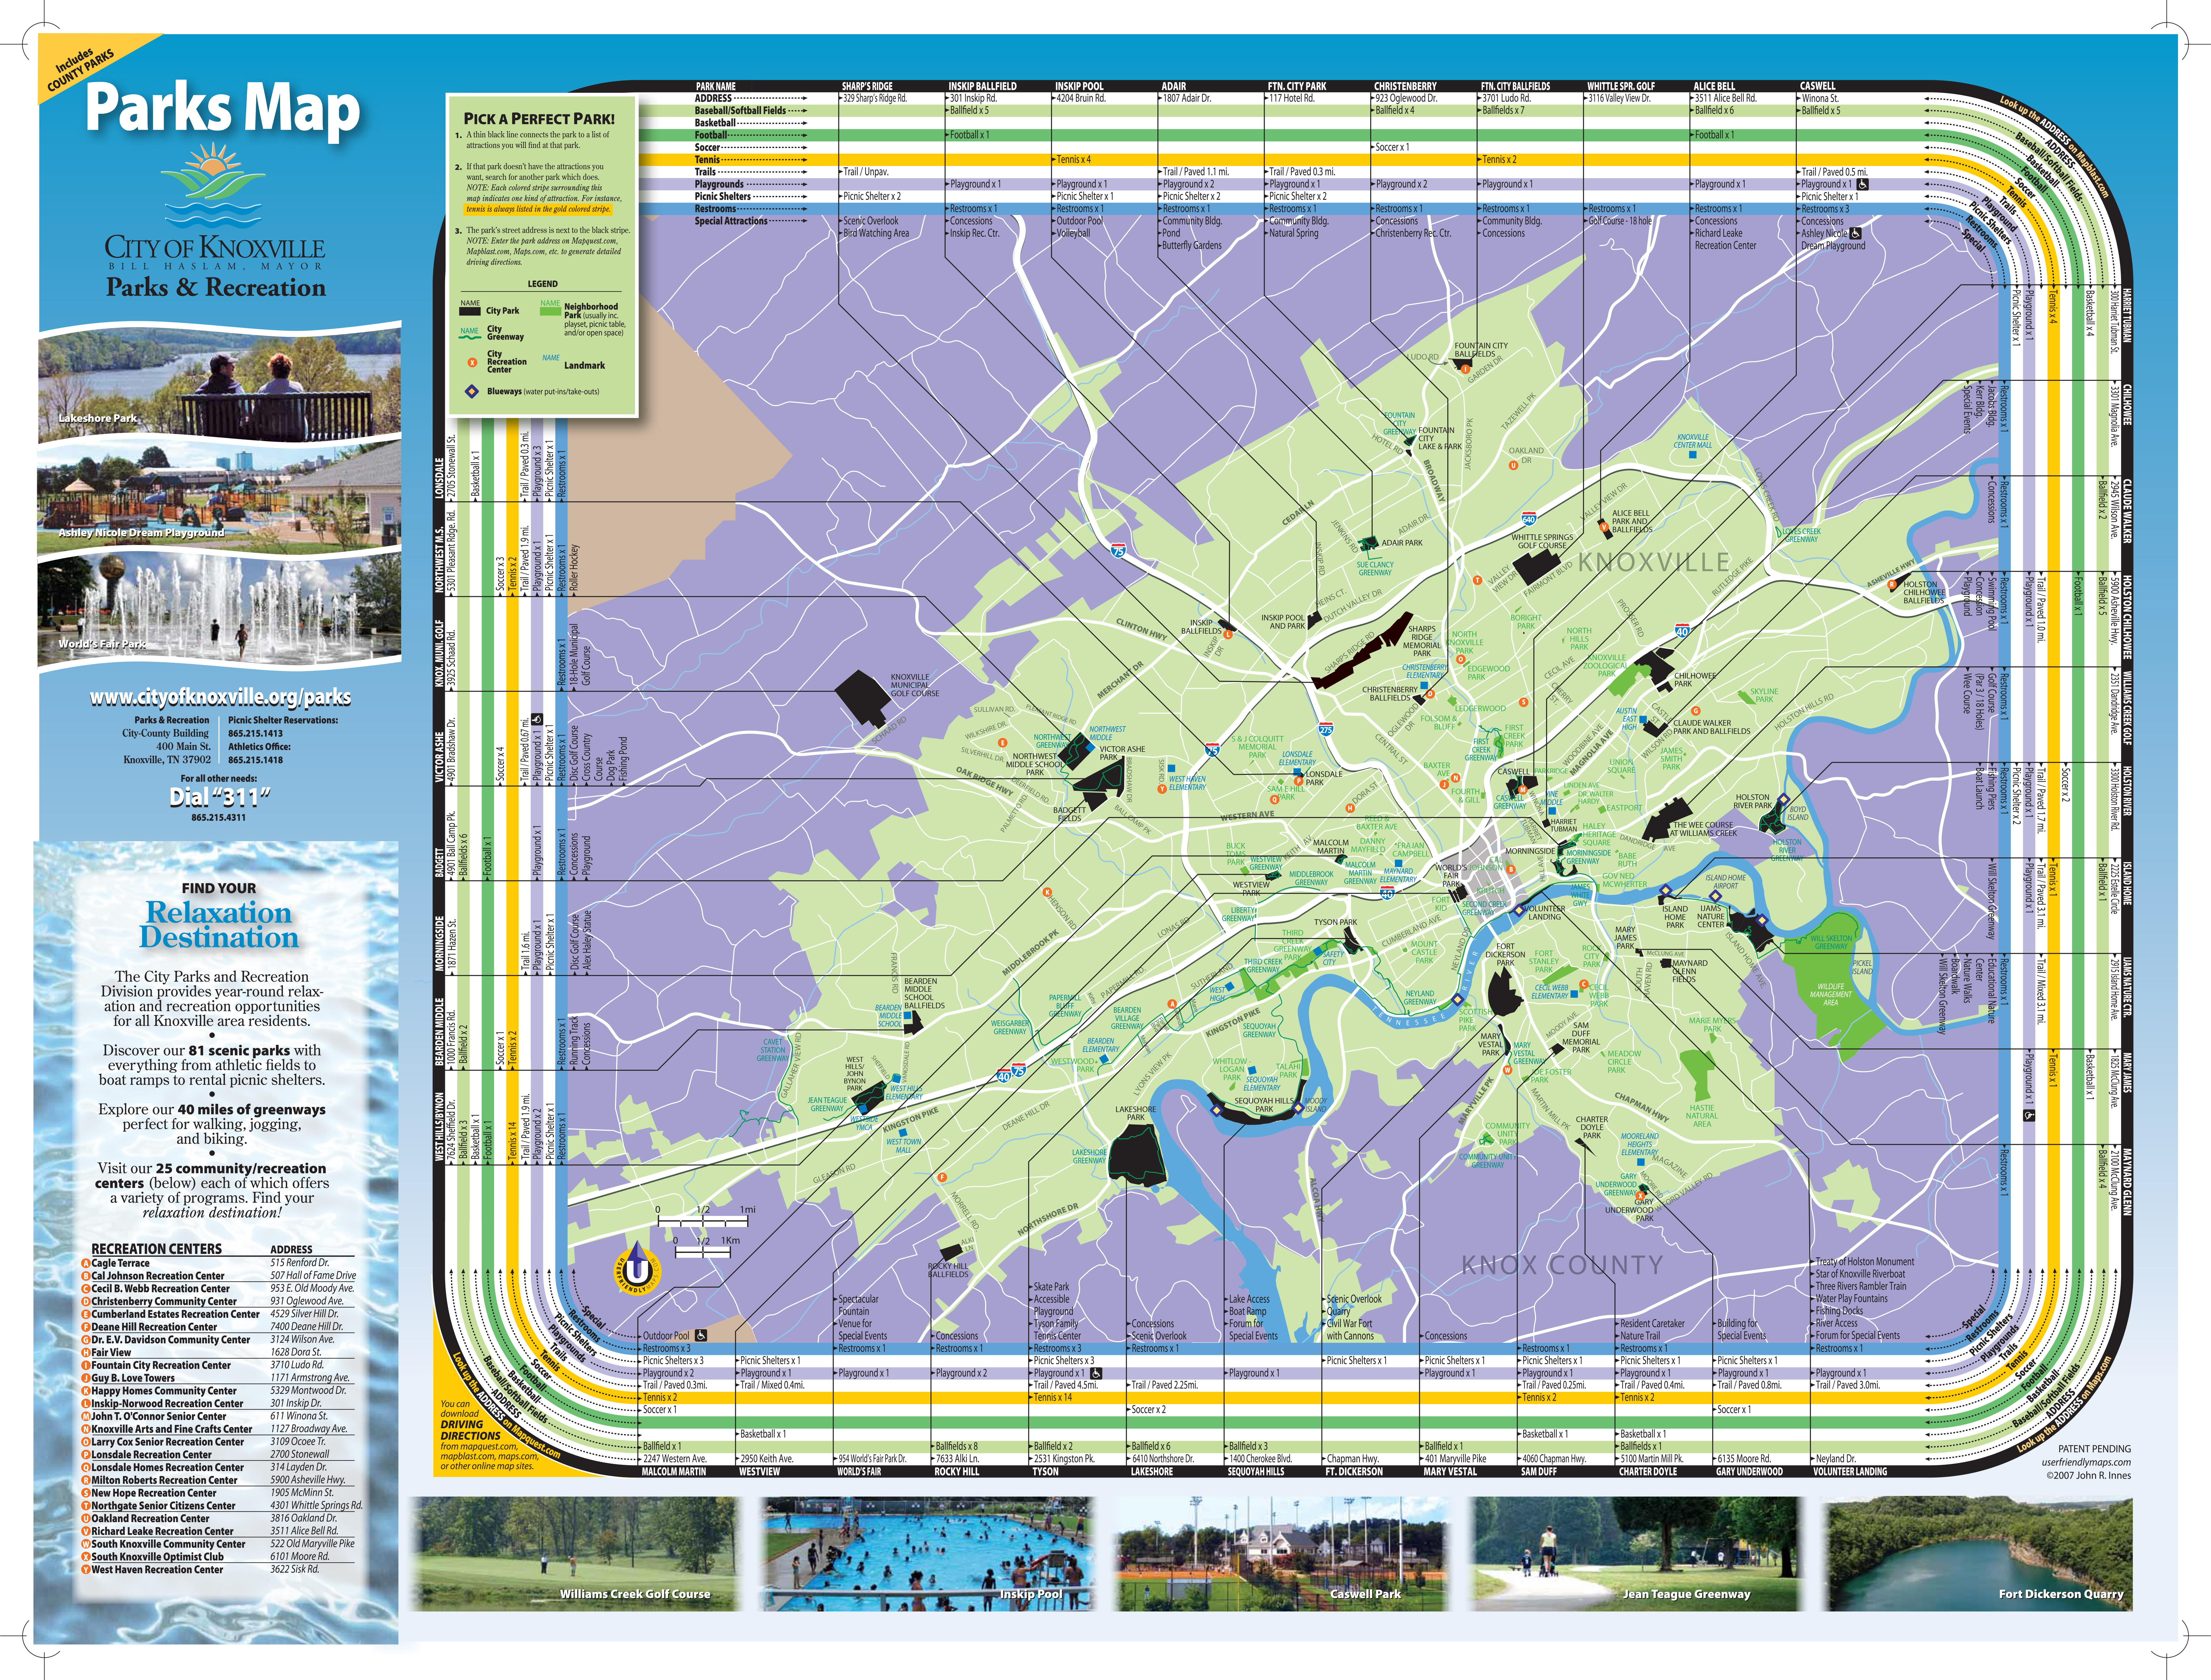 Maps | Visit Knoxville Knoxville Tn Map Illustration on louisville ky map, greeneville tn map, baton rouge la map, richmond va map, alabama tn map, athens ga map, gainesboro tn map, coalfield tn map, west tn river map, knoxville tennessee, great smoky mountains tn map, tallahassee fl map, mt carmel tn map, university of memphis tn map, raleigh nc map, smith co tn map, nashville tennessee usa map, jackson tn map, tn county map, abingdon tn map,